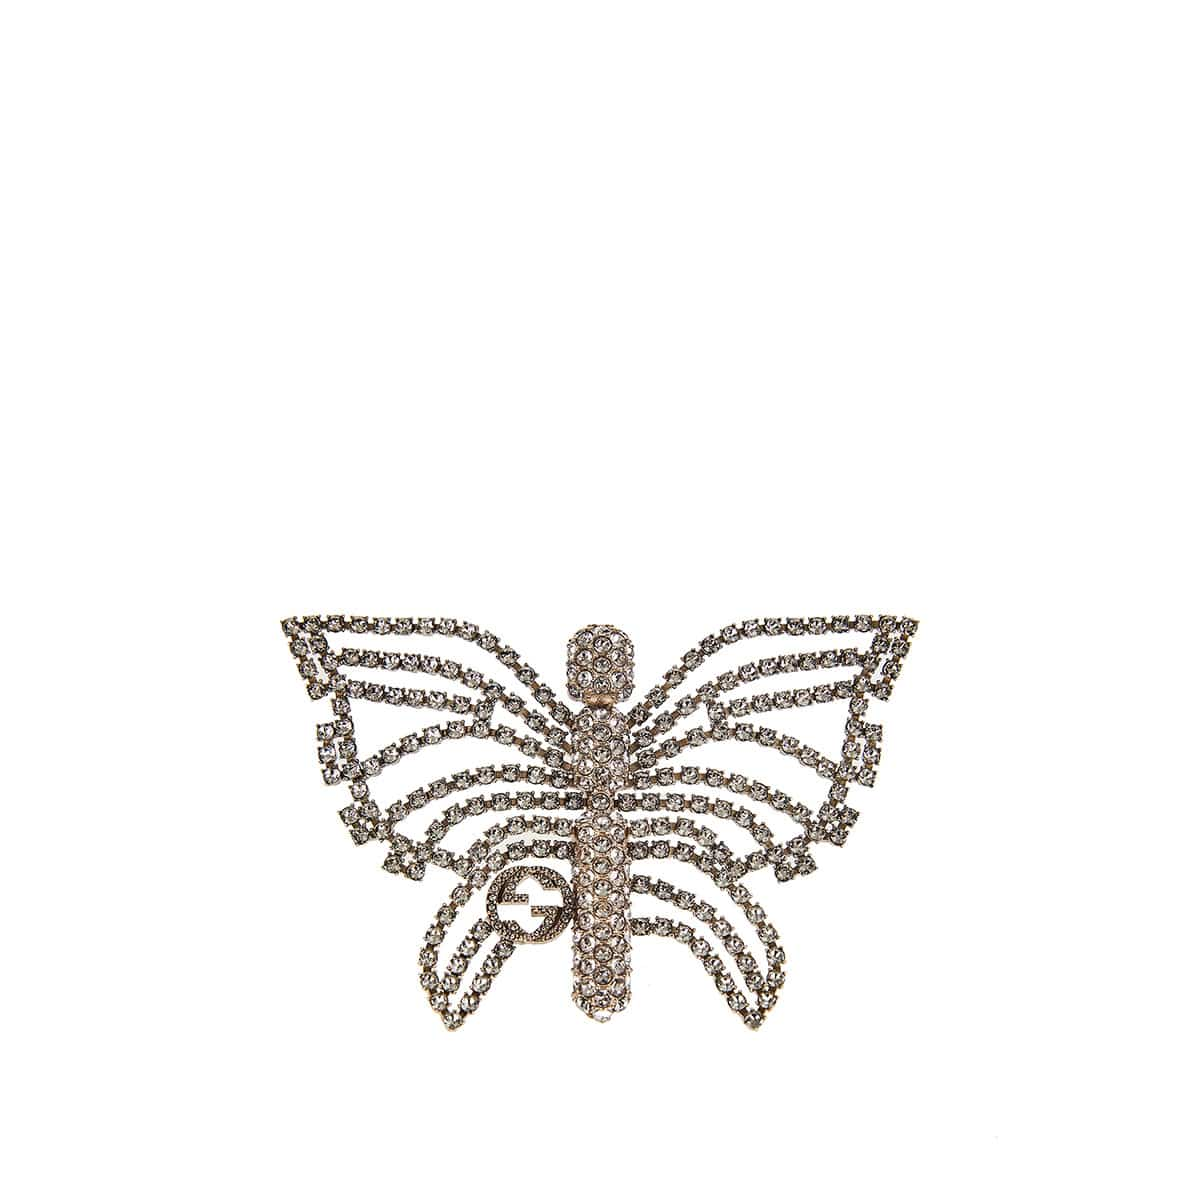 Crystal-embellished butterfly brooch